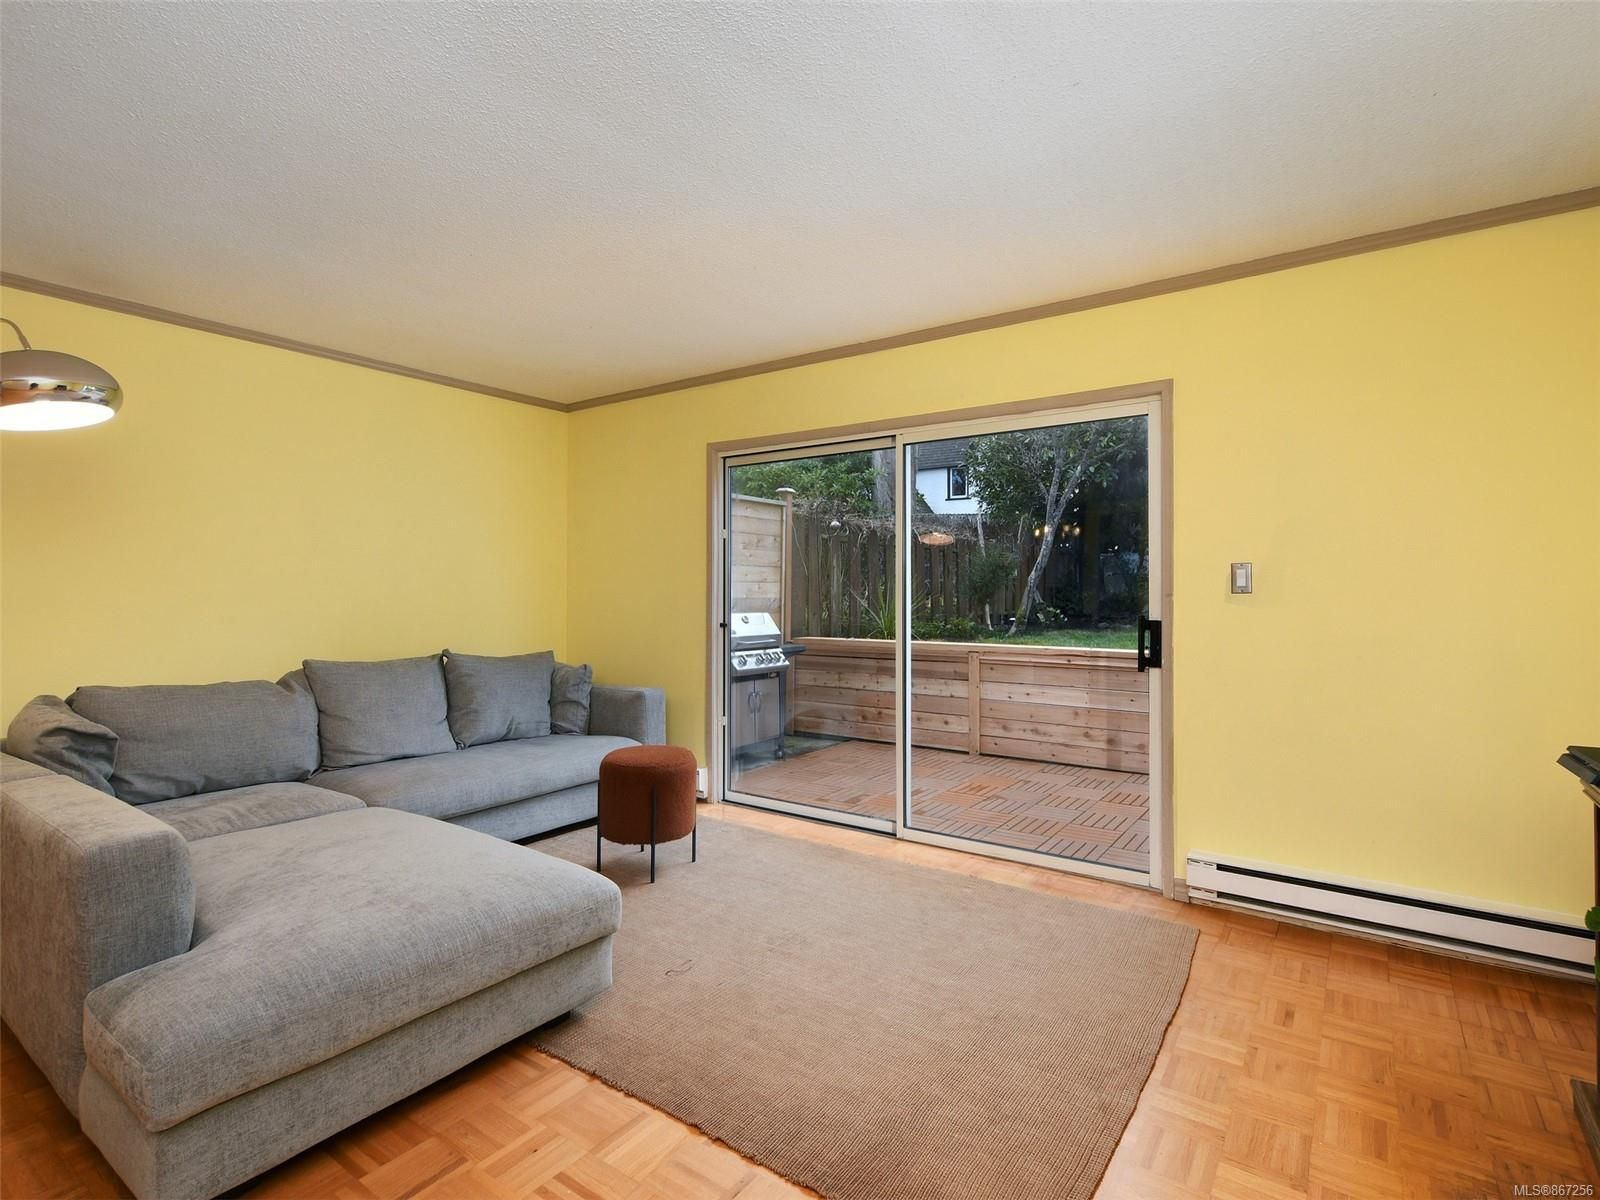 Photo 3: Photos: 5 869 Swan St in : SE Swan Lake Row/Townhouse for sale (Saanich East)  : MLS®# 867256